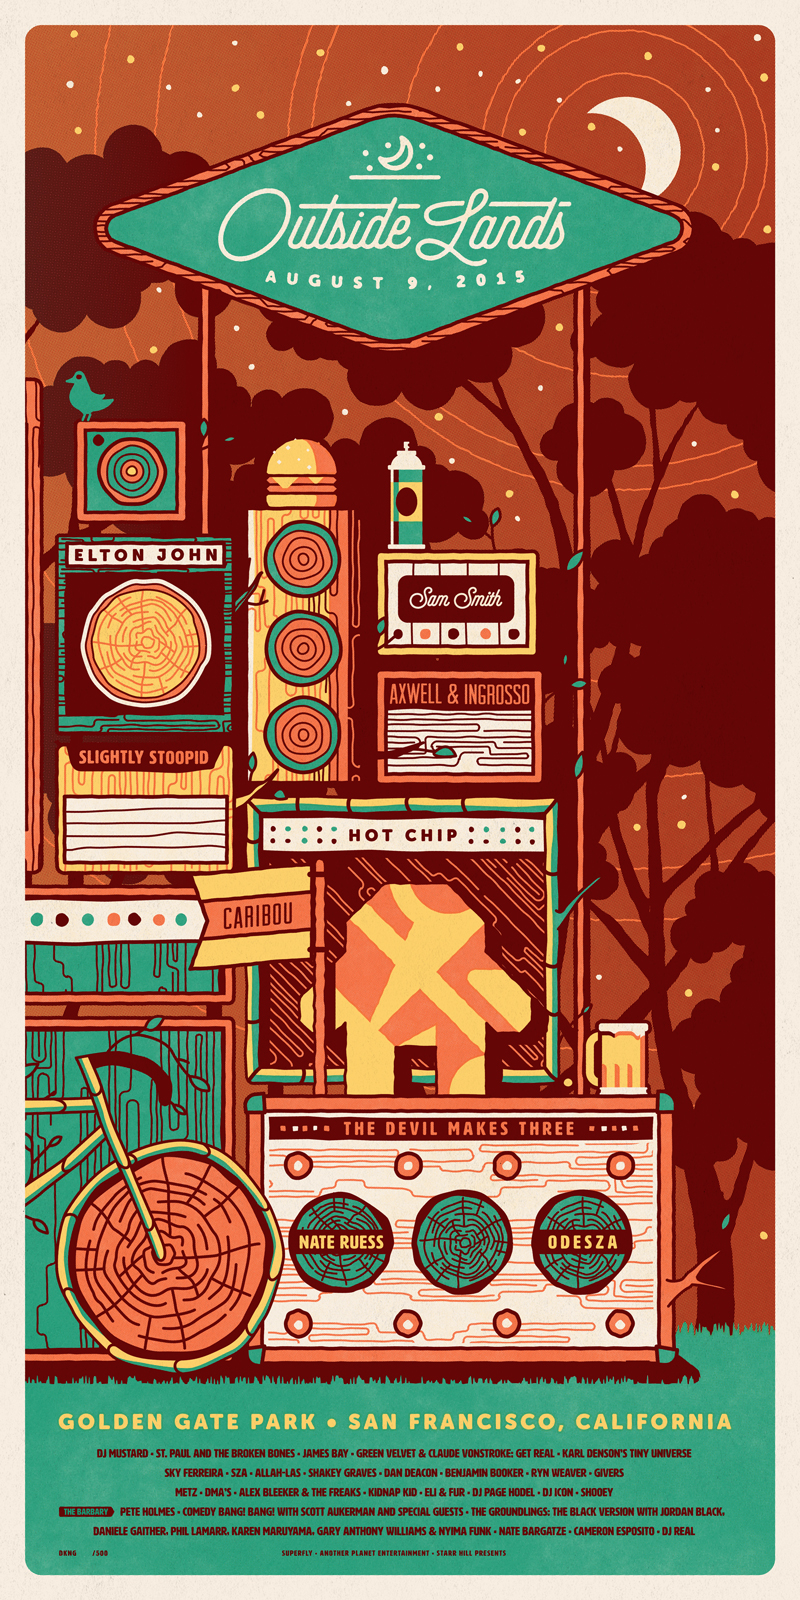 Outside Lands 2015 Poster Triptych by DKNG